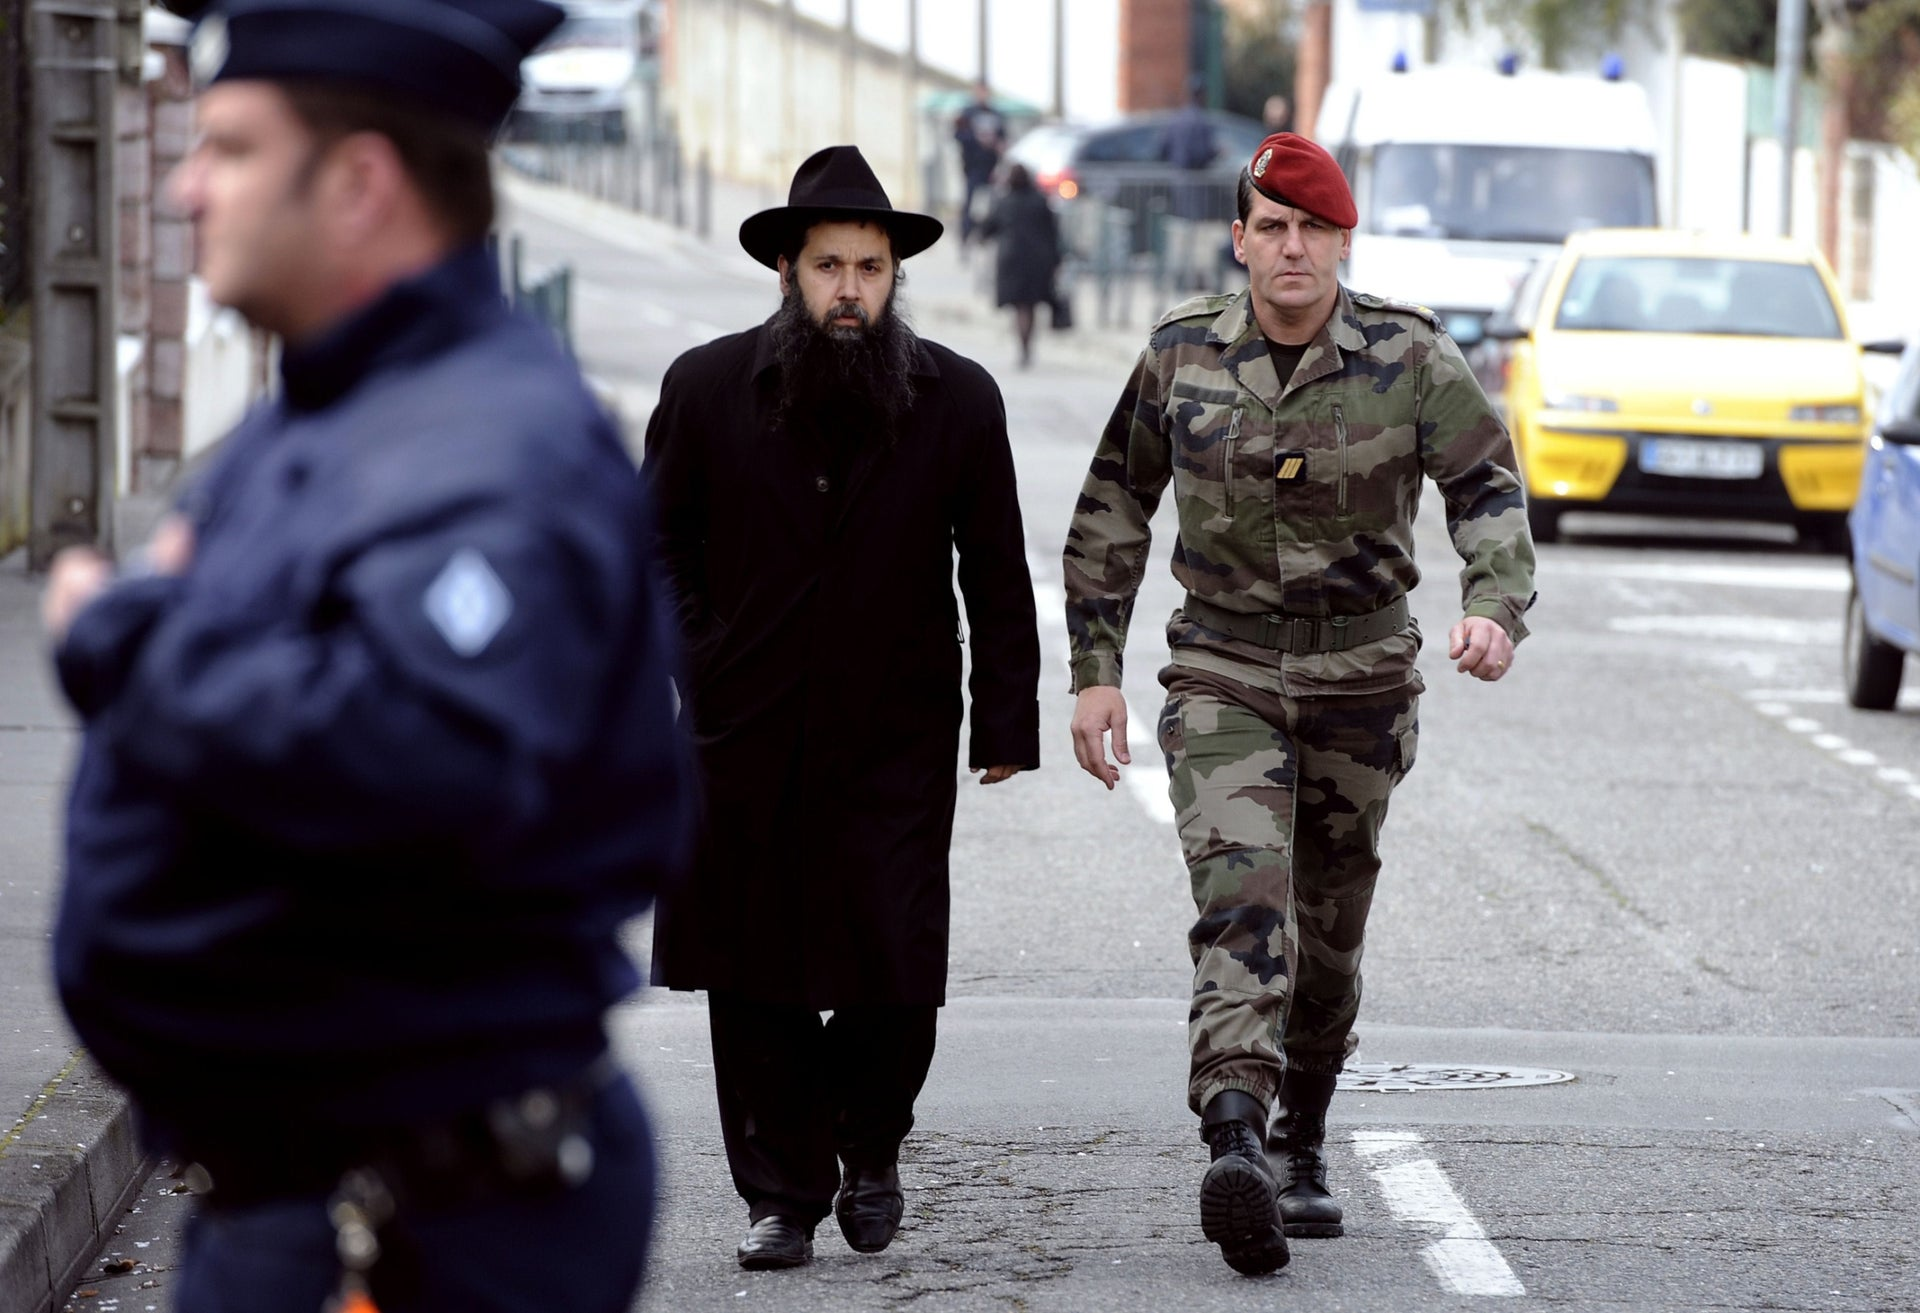 """A rabbi flanked by a French paratrooper leaves the """"Ozar Hatorah"""" Jewish school in Toulouse, a day after the shooting that killed four people there, March 20, 2012."""